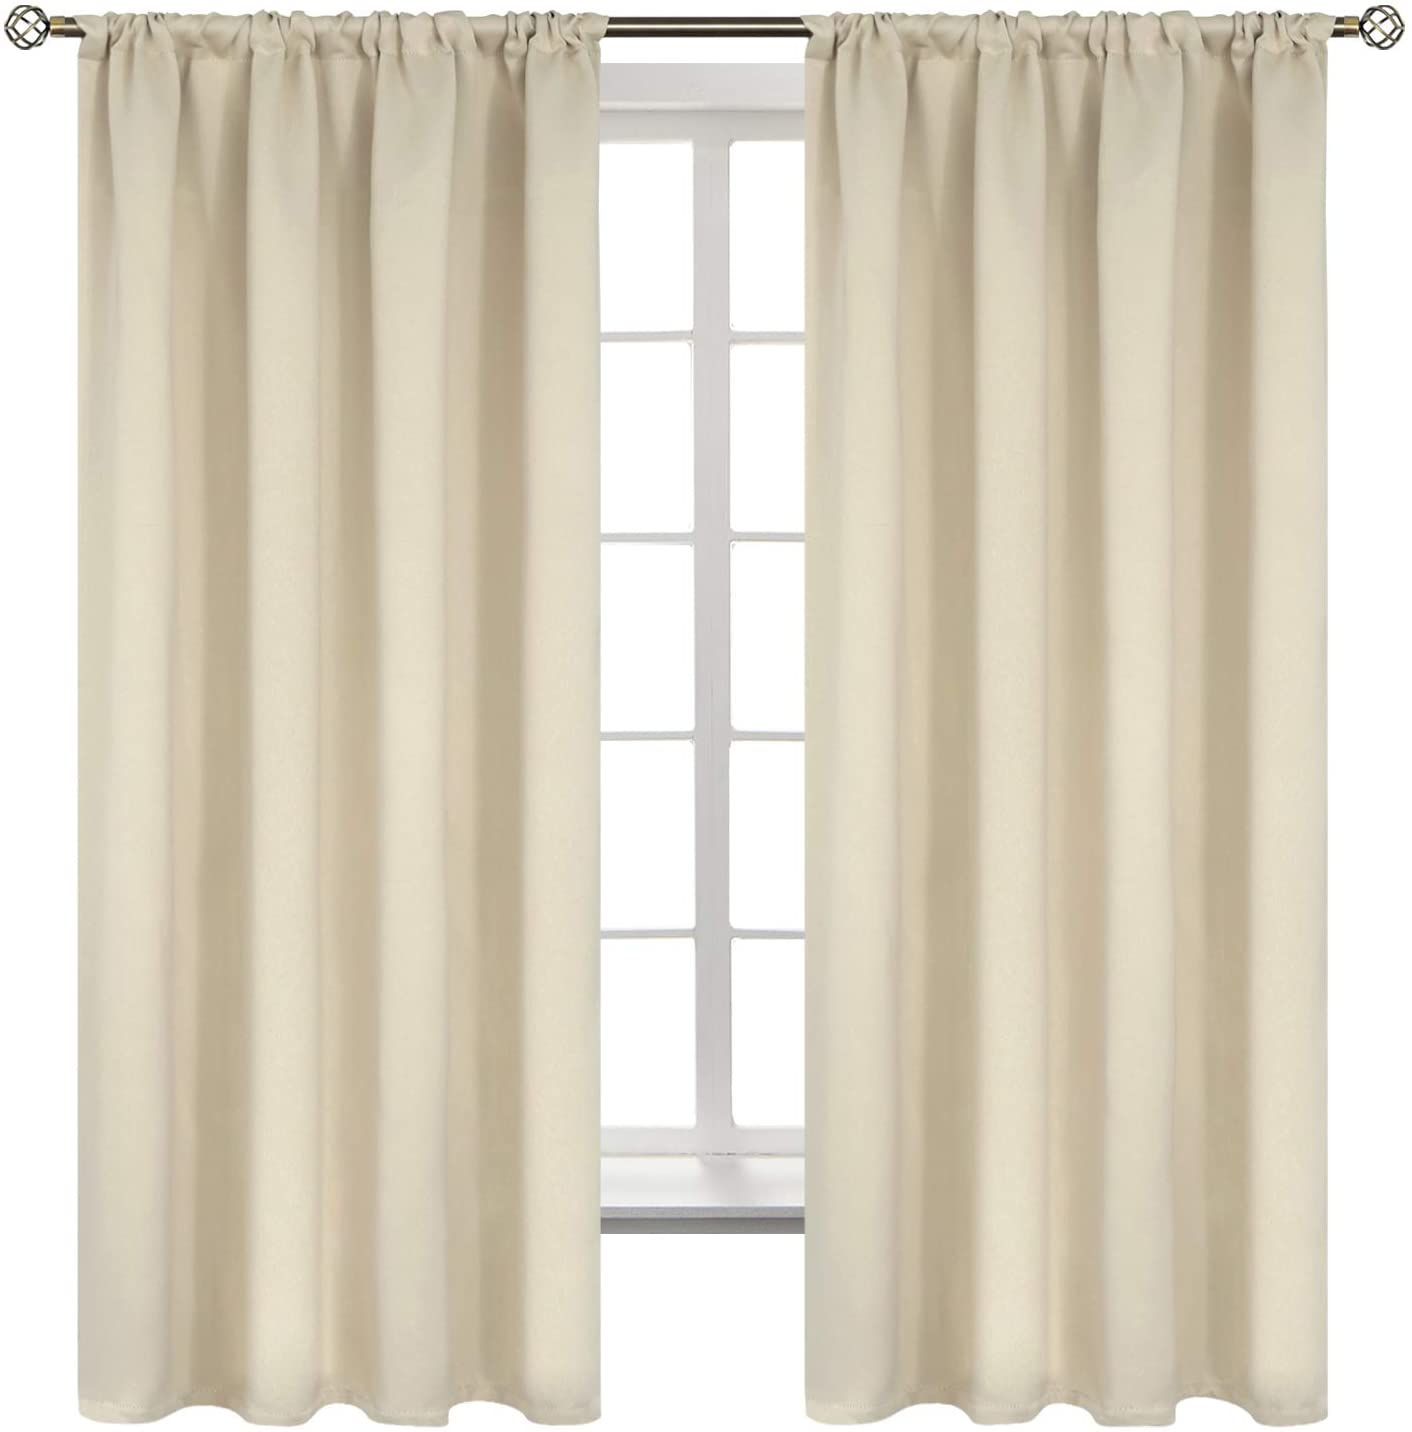 BGment Rod Pocket Blackout Curtains for Bedroom - Thermal Insulated Room Darkening Curtain for Living Room, 52 x 63 Inch, 2 Panels, Beige